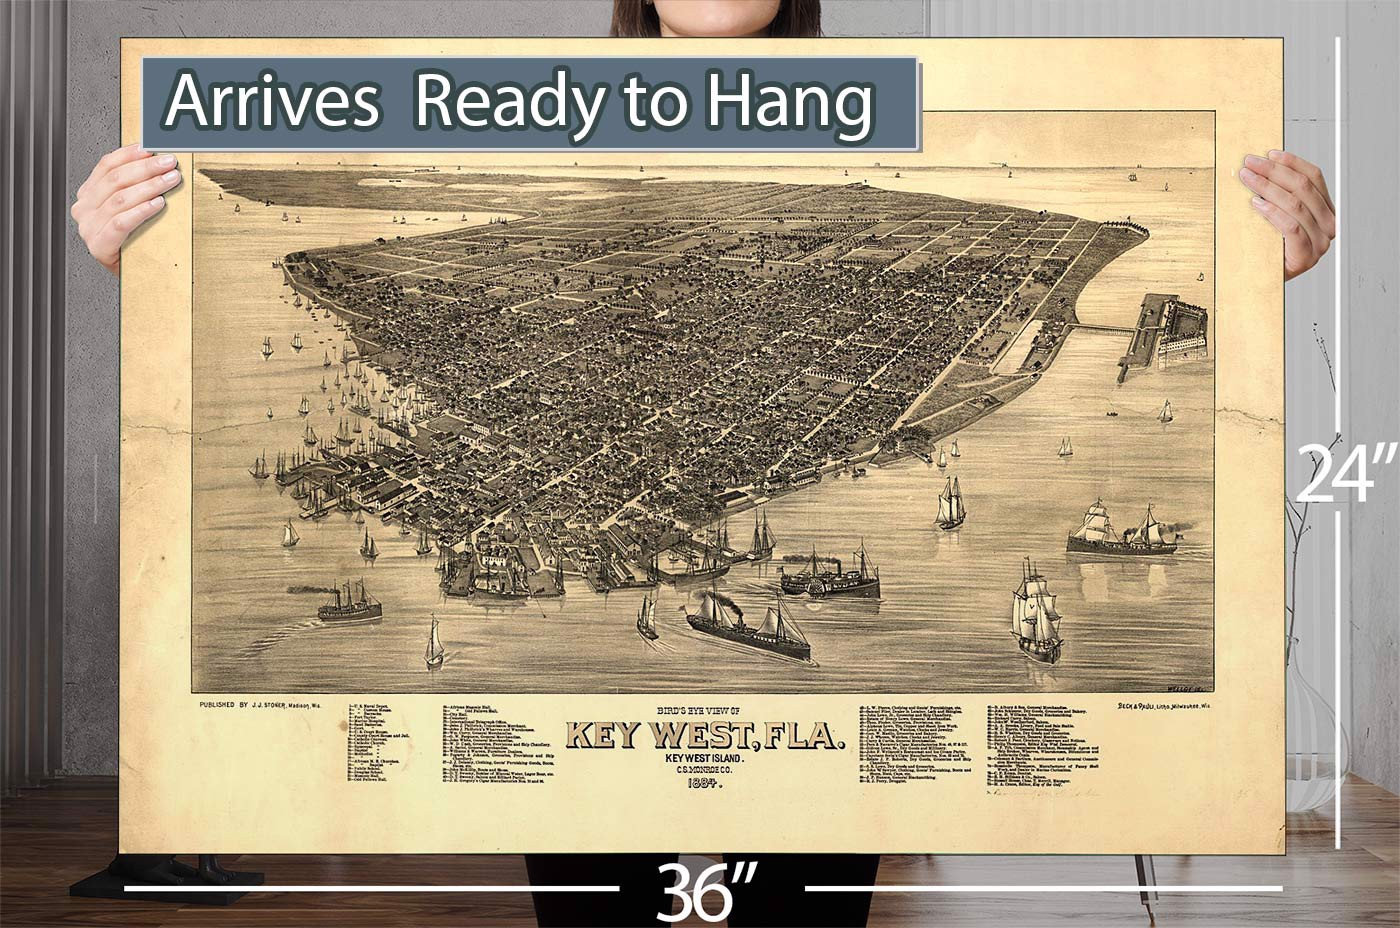 bird s eye view of key west fla key west island cs monroe co 1884 vintage map